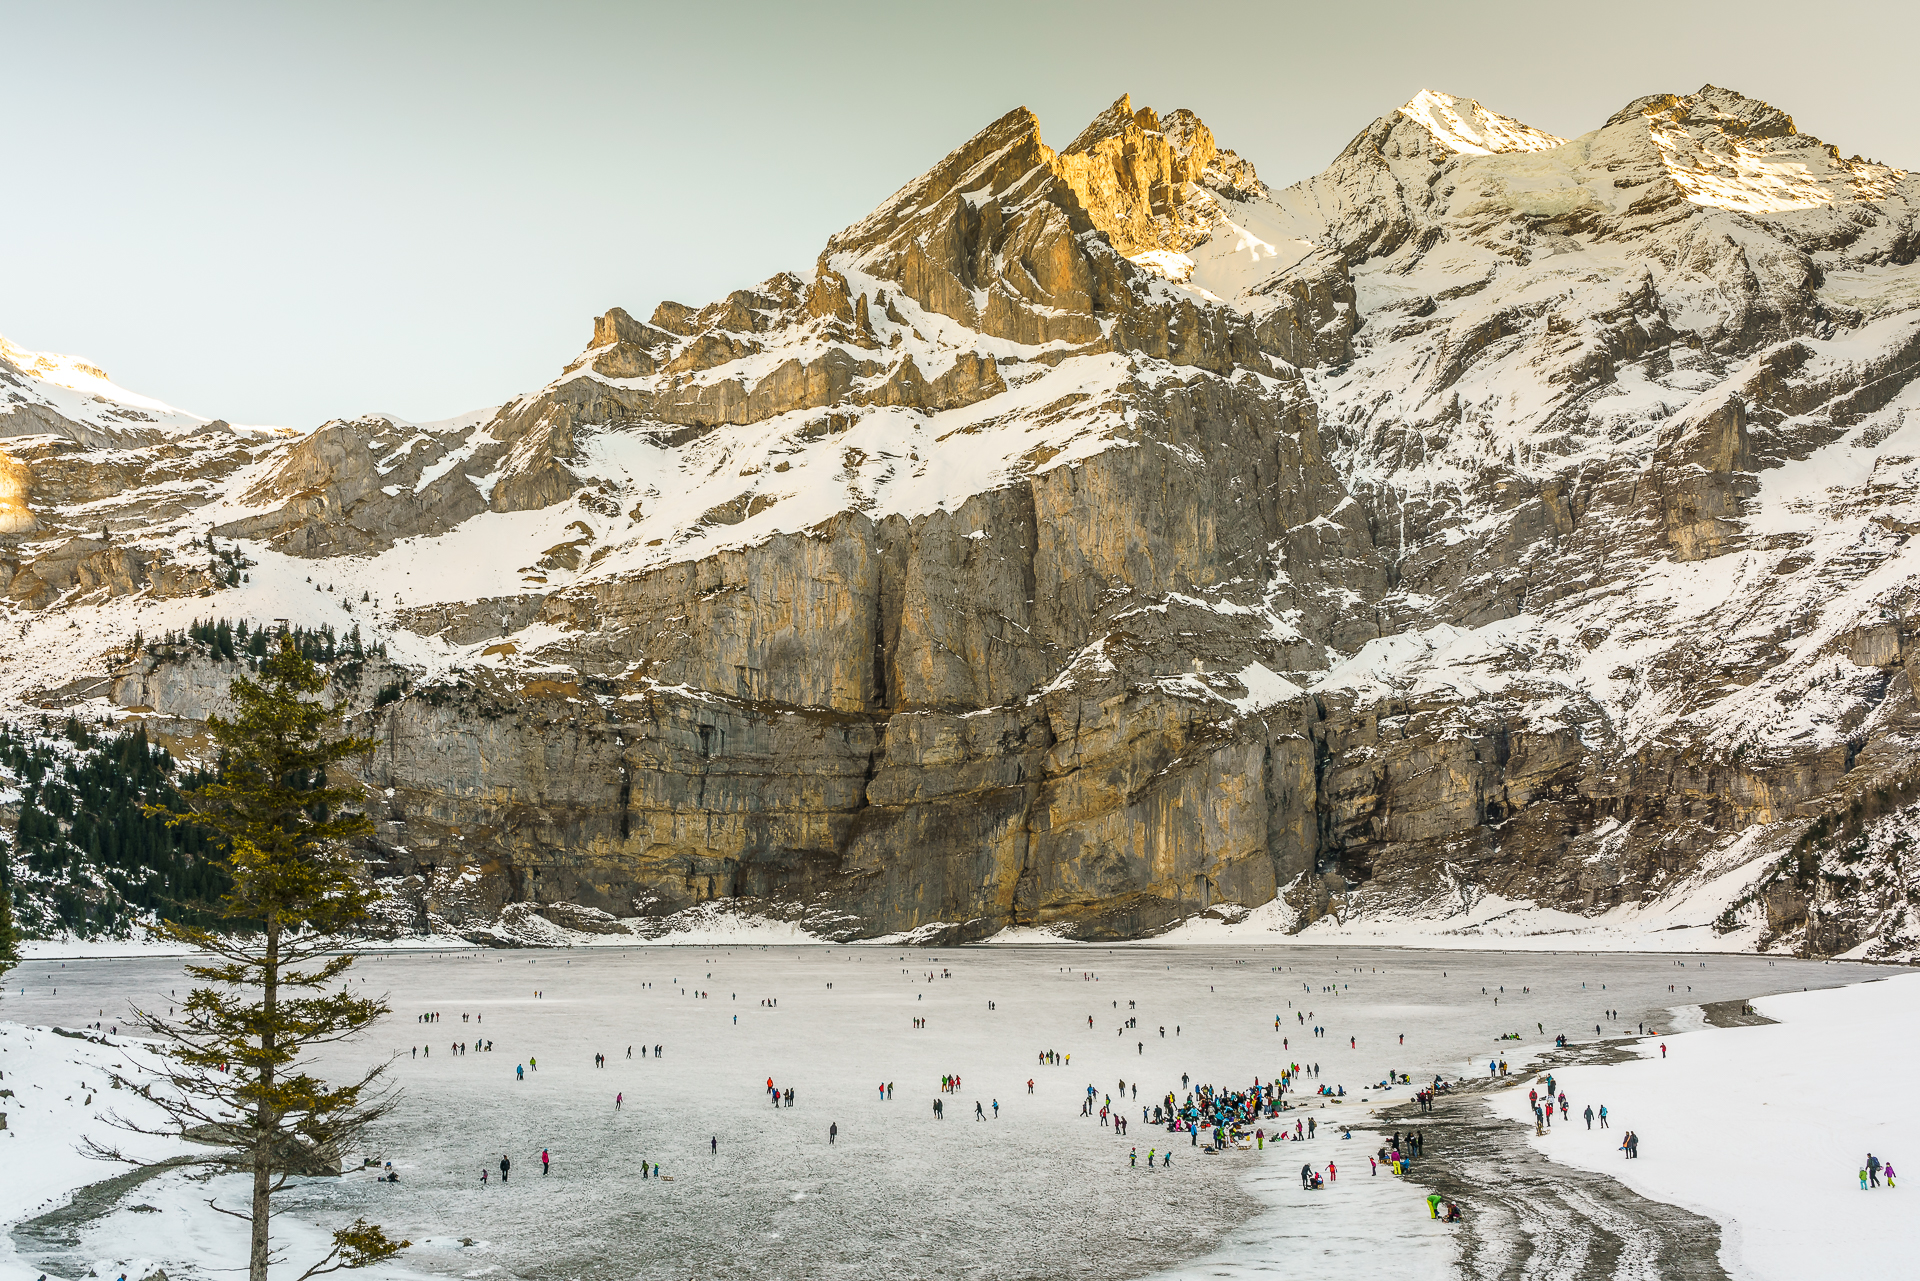 Winter-Oeschinensee-Eislaufen